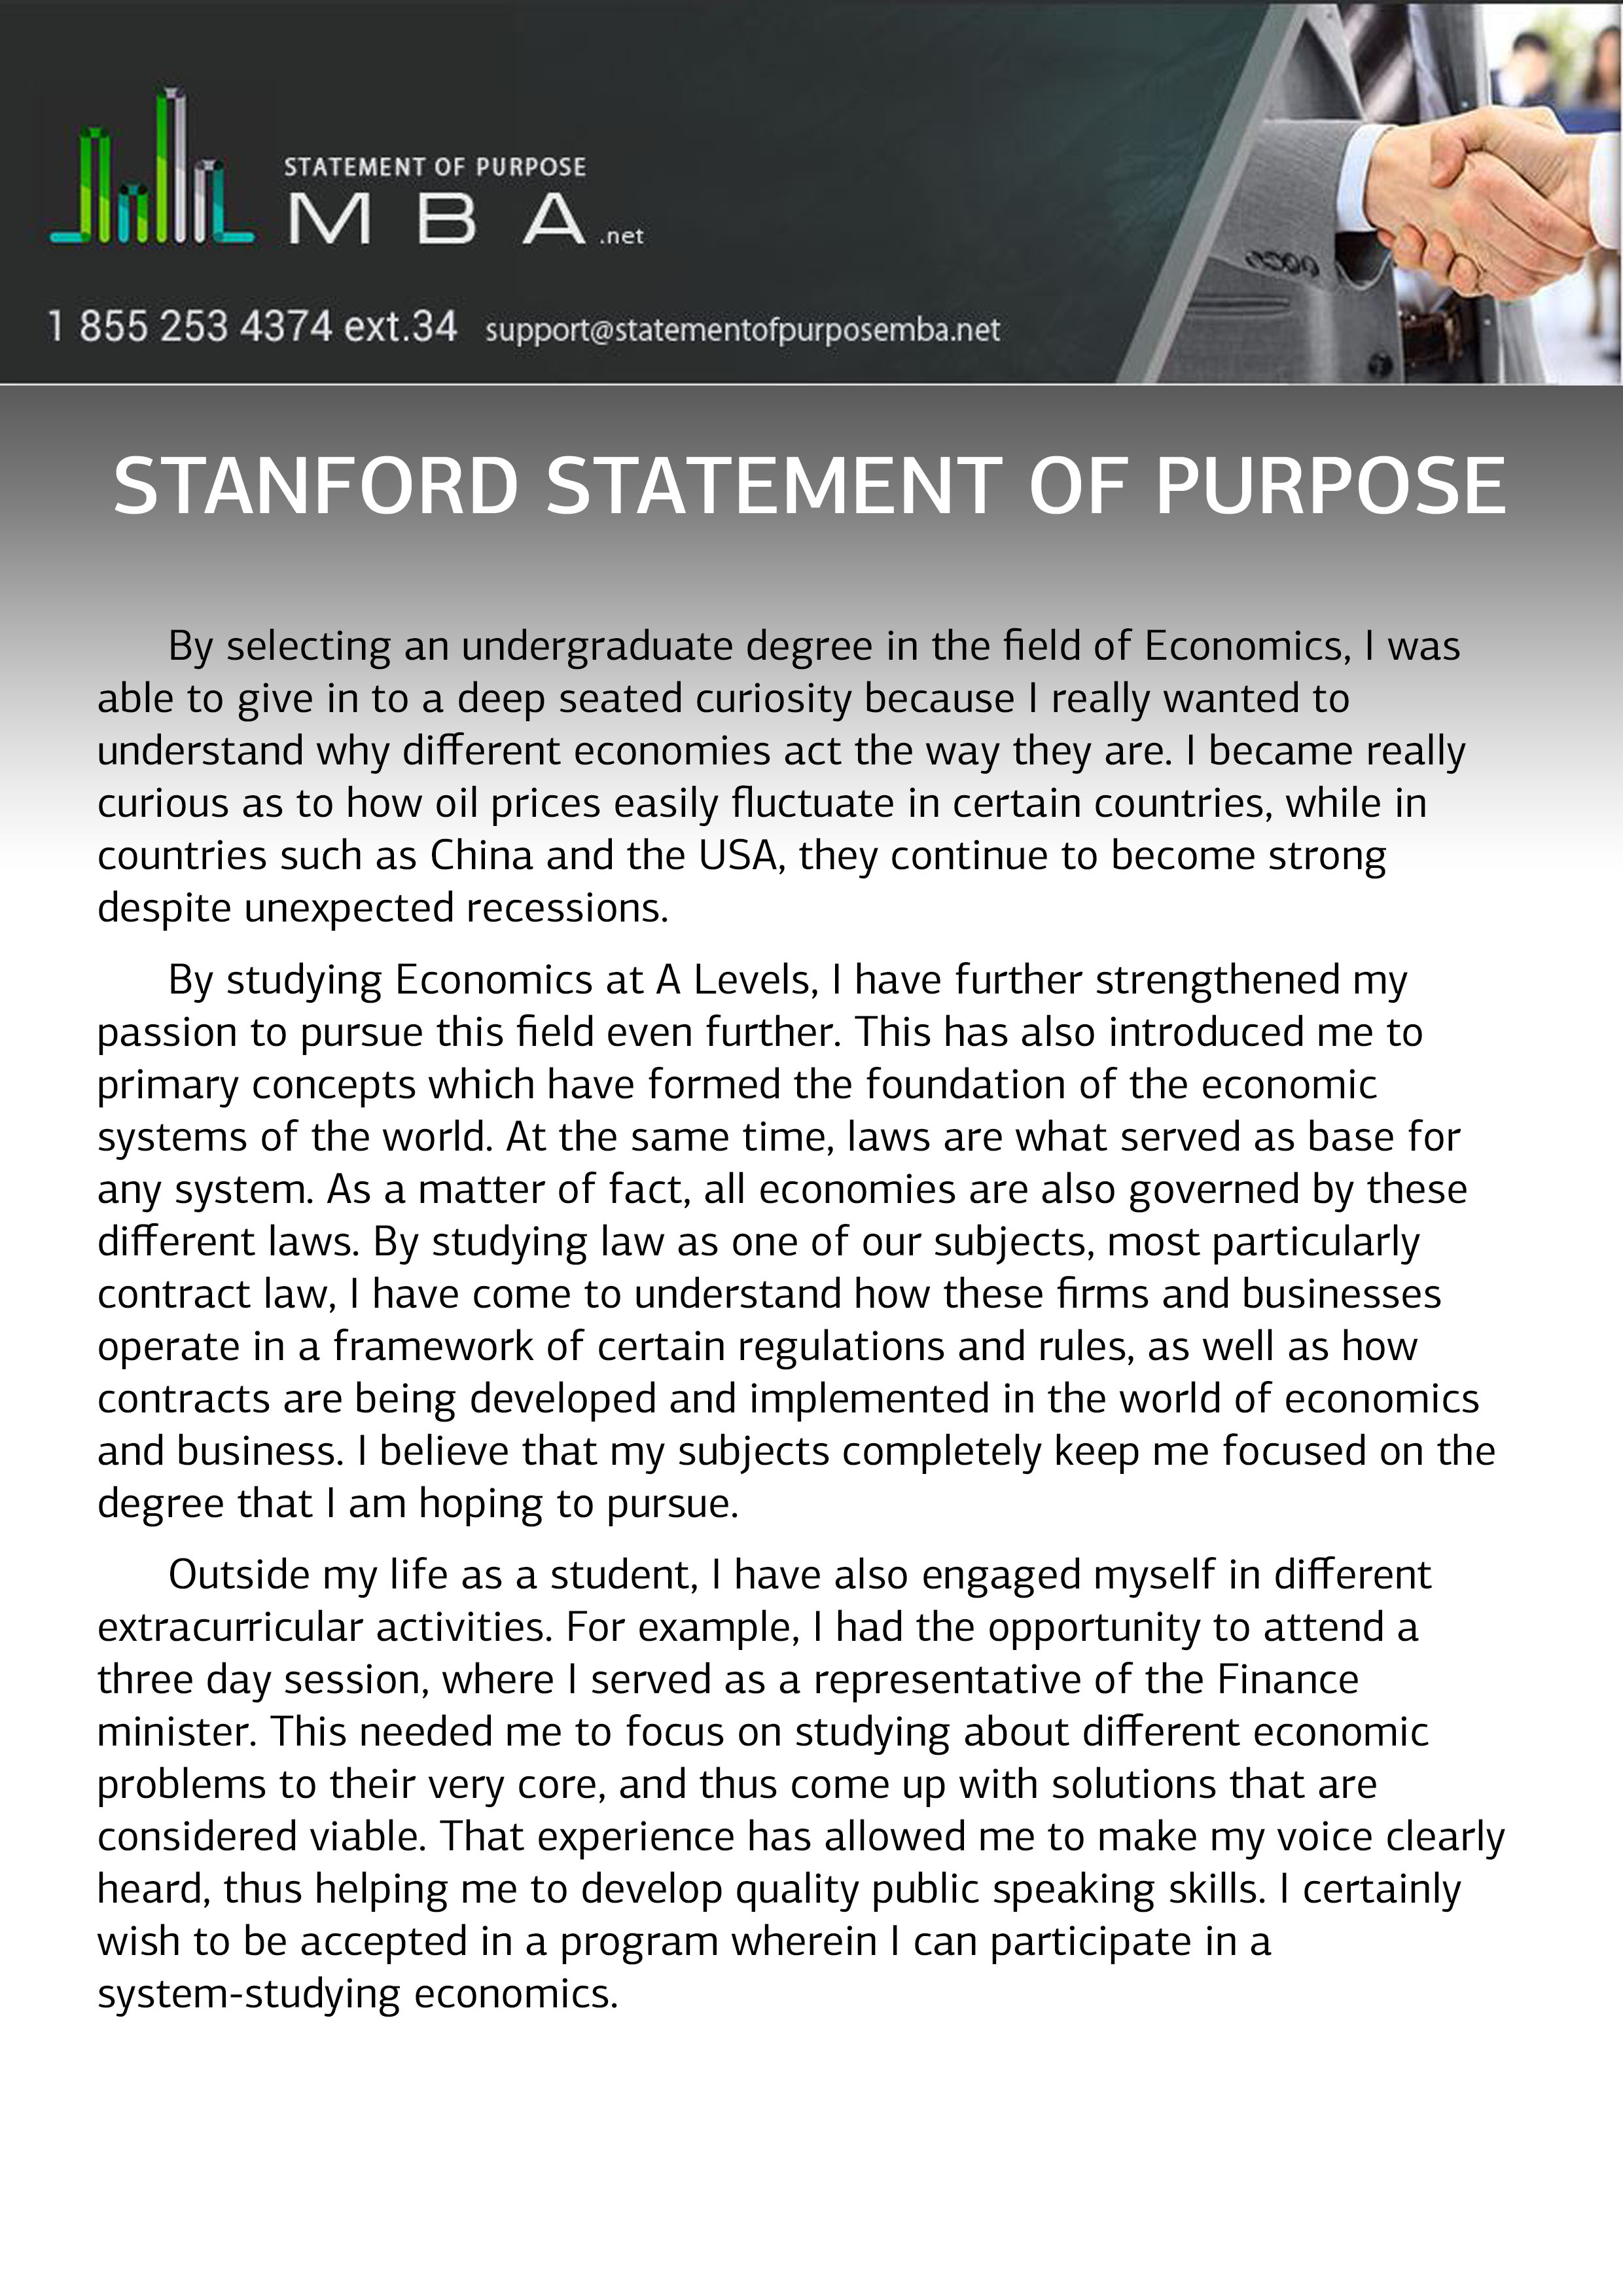 020 Stanford Statement Of Purpose Sample Essay Example Phenomenal Prompts Examples Application Full